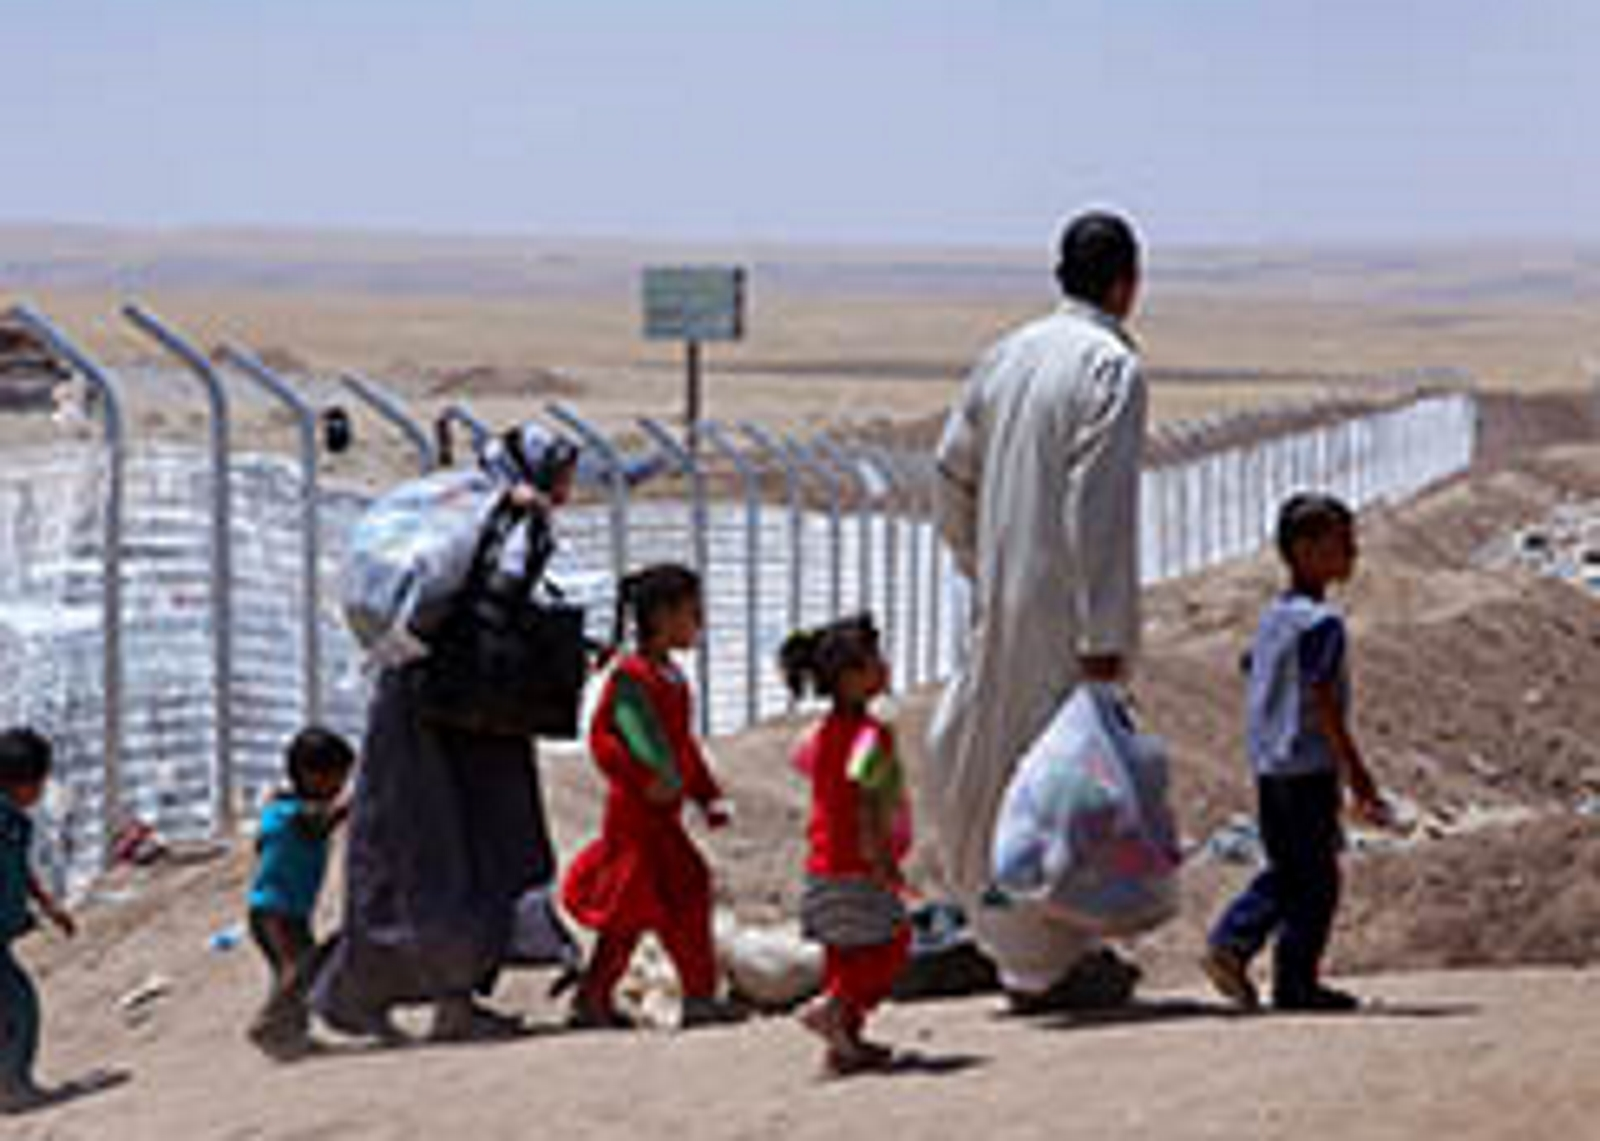 Members of an Iraqi displaced family, who fled violence in the northern city of Tal Afar, carry bags as they arrive at Khazer refugee camp near the Kurdish checkpoint of Aski kalak, 40 km West of Arbil, the capital of the autonomous Kurdish region of northern Iraq on July 27, 2014. Thousands of Christians and other minorities have fled the northern city of Mosul and other areas after a jihadist onslaught led by Islamic State insurgents swept swathes of Iraq's north and west the month before.  AFP PHOTO / SAFIN HAMED